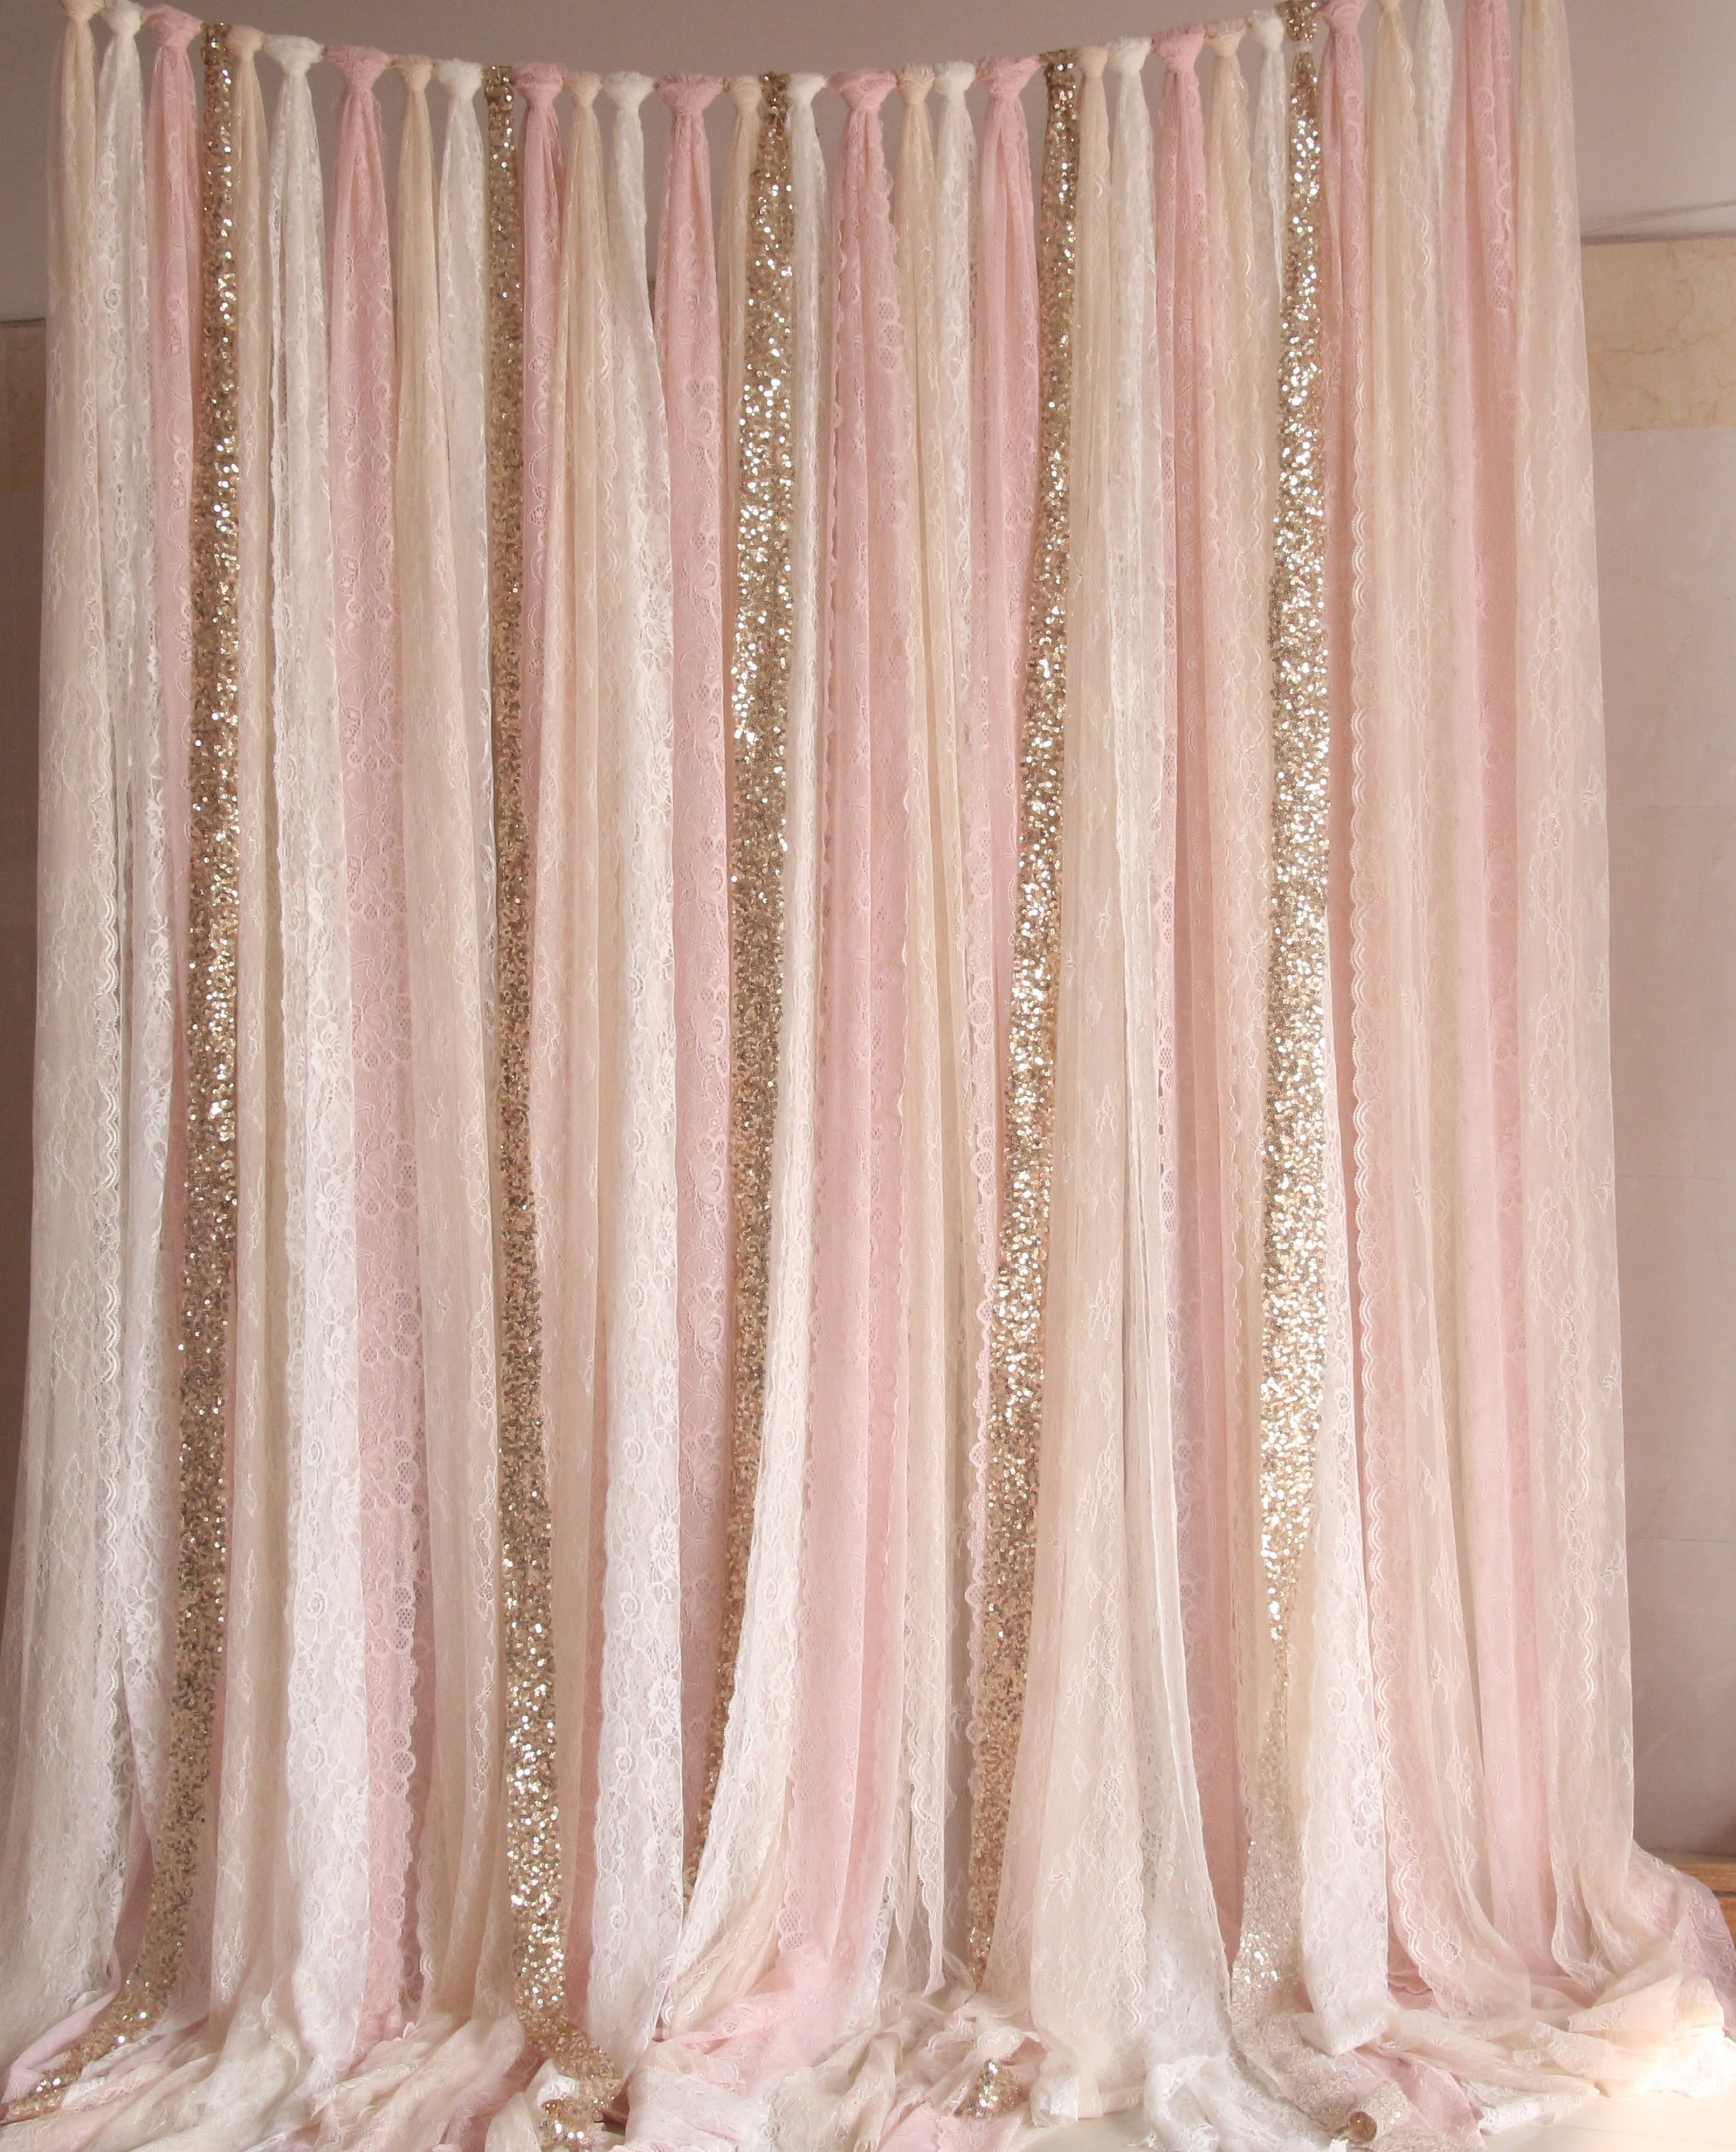 Pink Sequin Curtains Blush Pink White Lace Fabric Gold Sparkle Photobooth Backdrop